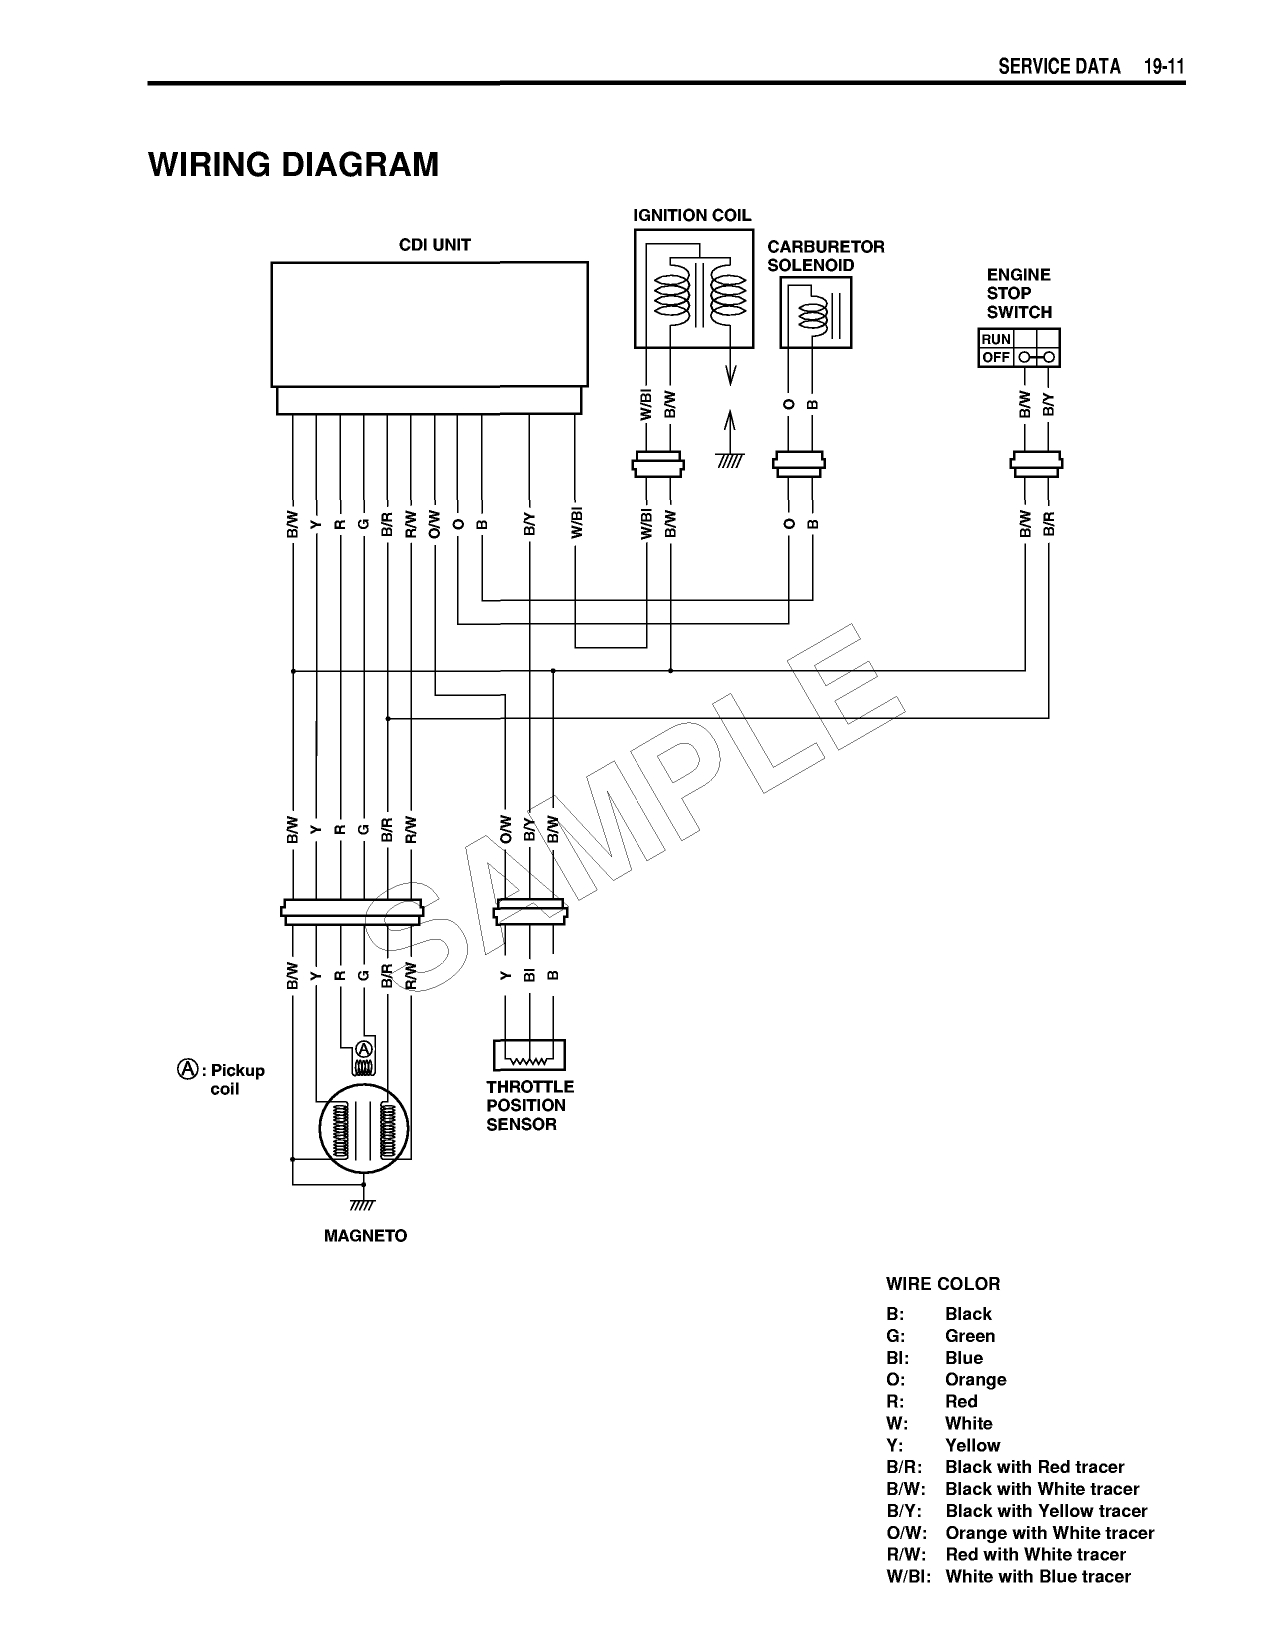 354957 Camshaft Timing Chain likewise Kawasaki Bayou 300 Wiring Harness additionally 2005 Kawasaki Prairie Wiring Diagram further Suzuki 250 Quadrunner 4x4 Wiring Diagram further 7050 Trx 250 Ex Starting Problem. on kawasaki bayou 300 carburetor diagram